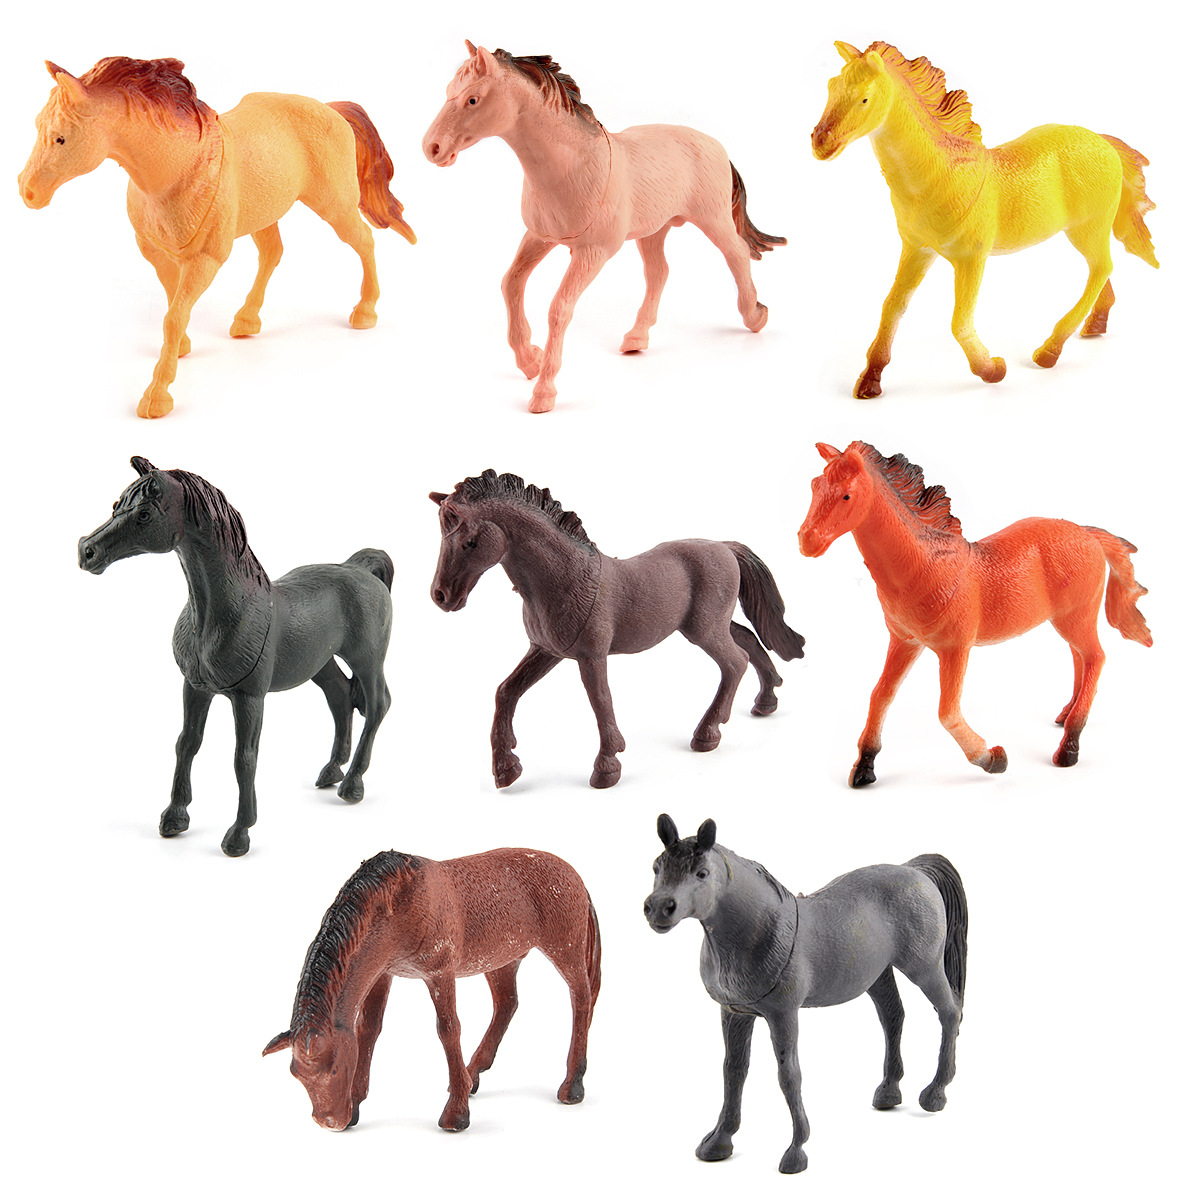 Wild animal model horse toys preschool cognitive static model of solid environmental protection decoration piaget s cognitive development model